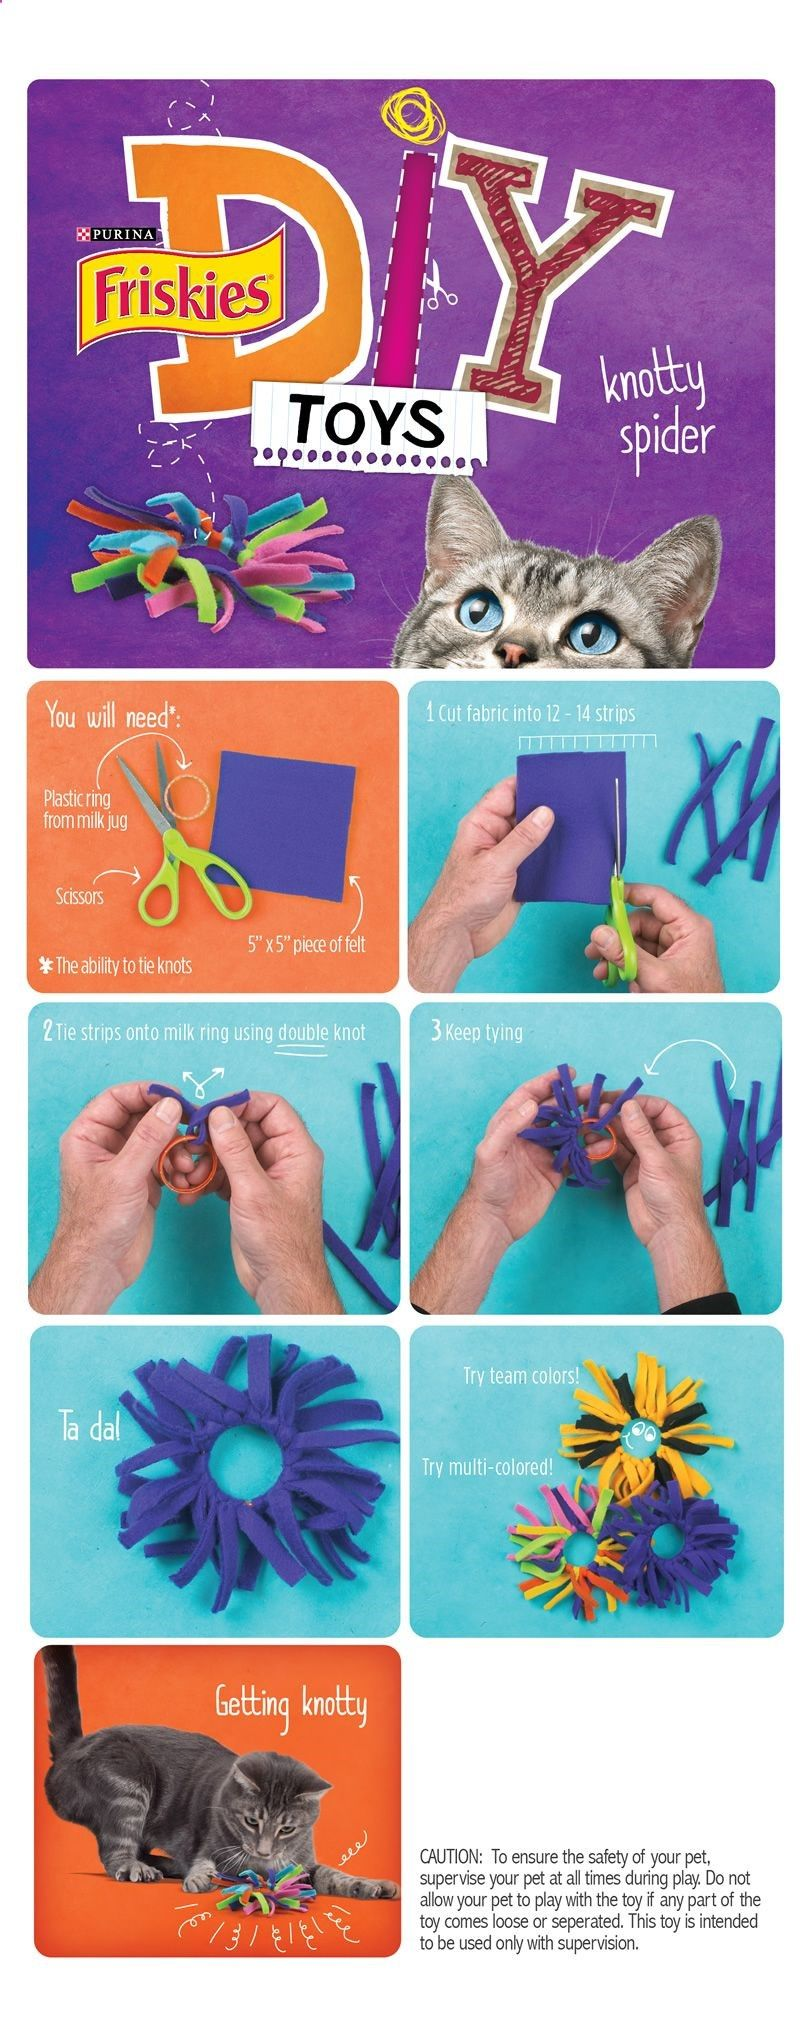 Friskies Diy Homemade Cat Toys Knotty Spider Awesome Toys For Kitty My Son And I Have Three Of These Toys Alread Diy Cat Toys Homemade Cat Toys Diy Pet Toys